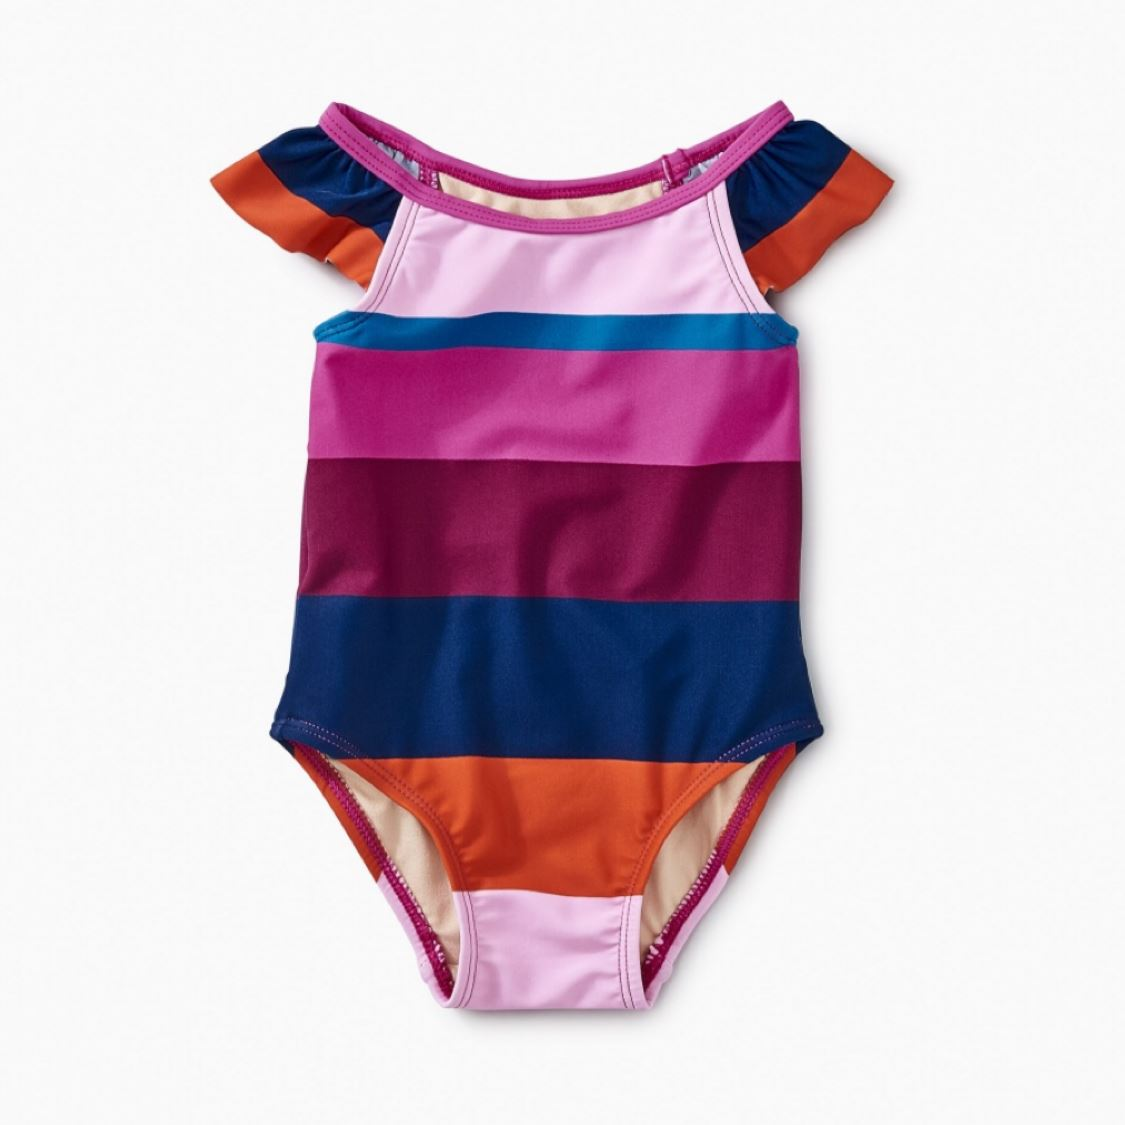 8W32600 - Tea Collection Cabana Stripe One Piece Girls Swimsuit Swimwear Tea Collection